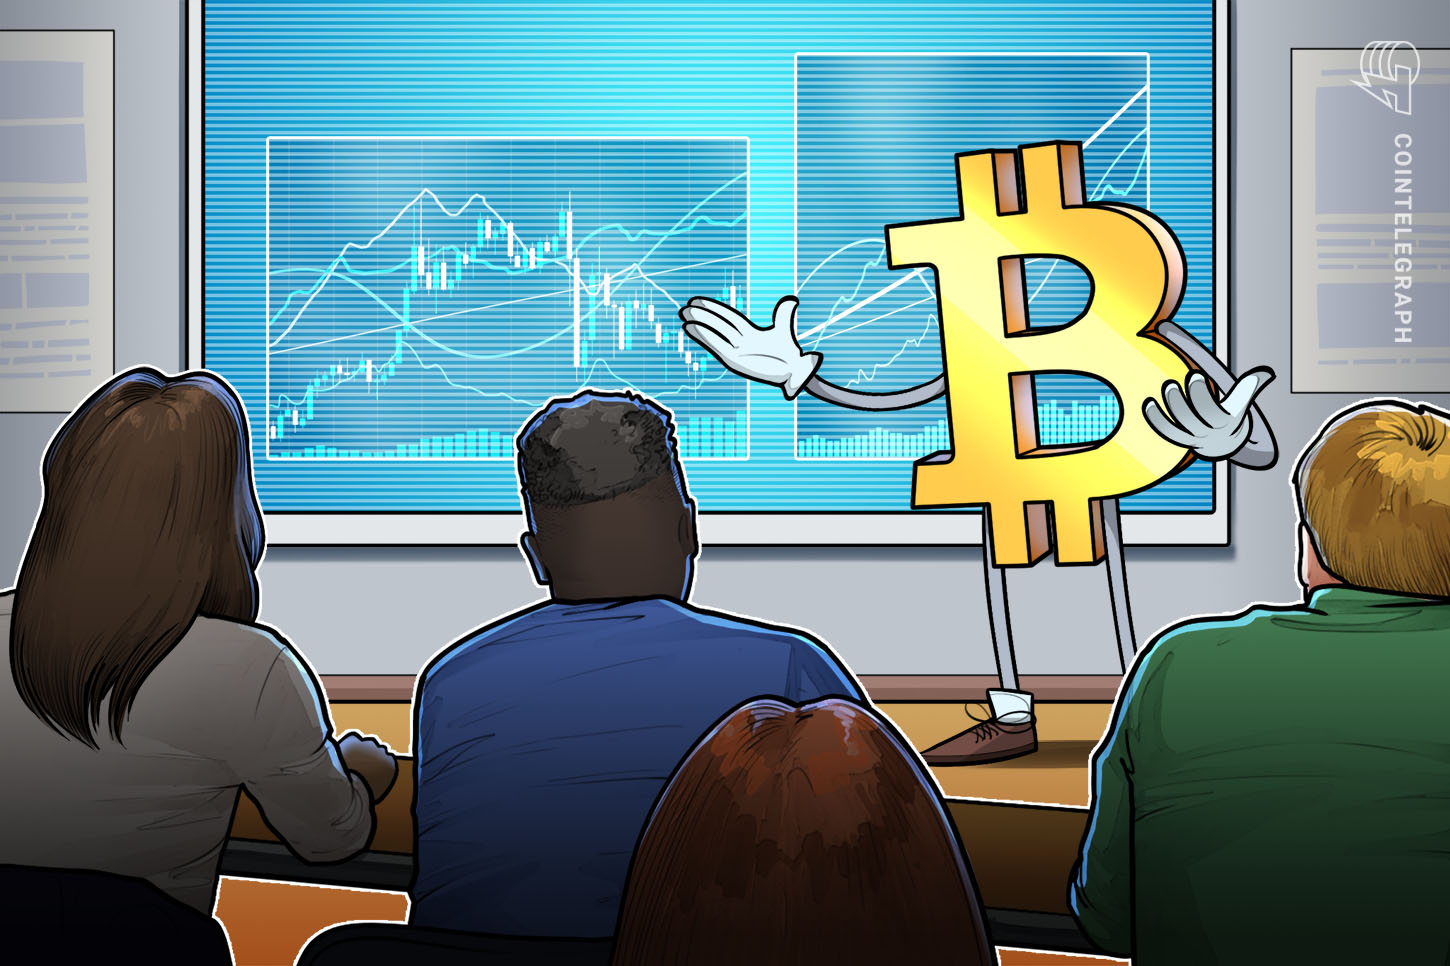 Next stop $85K for Bitcoin as analysts predict 'explosive' Q4 for BTC price action